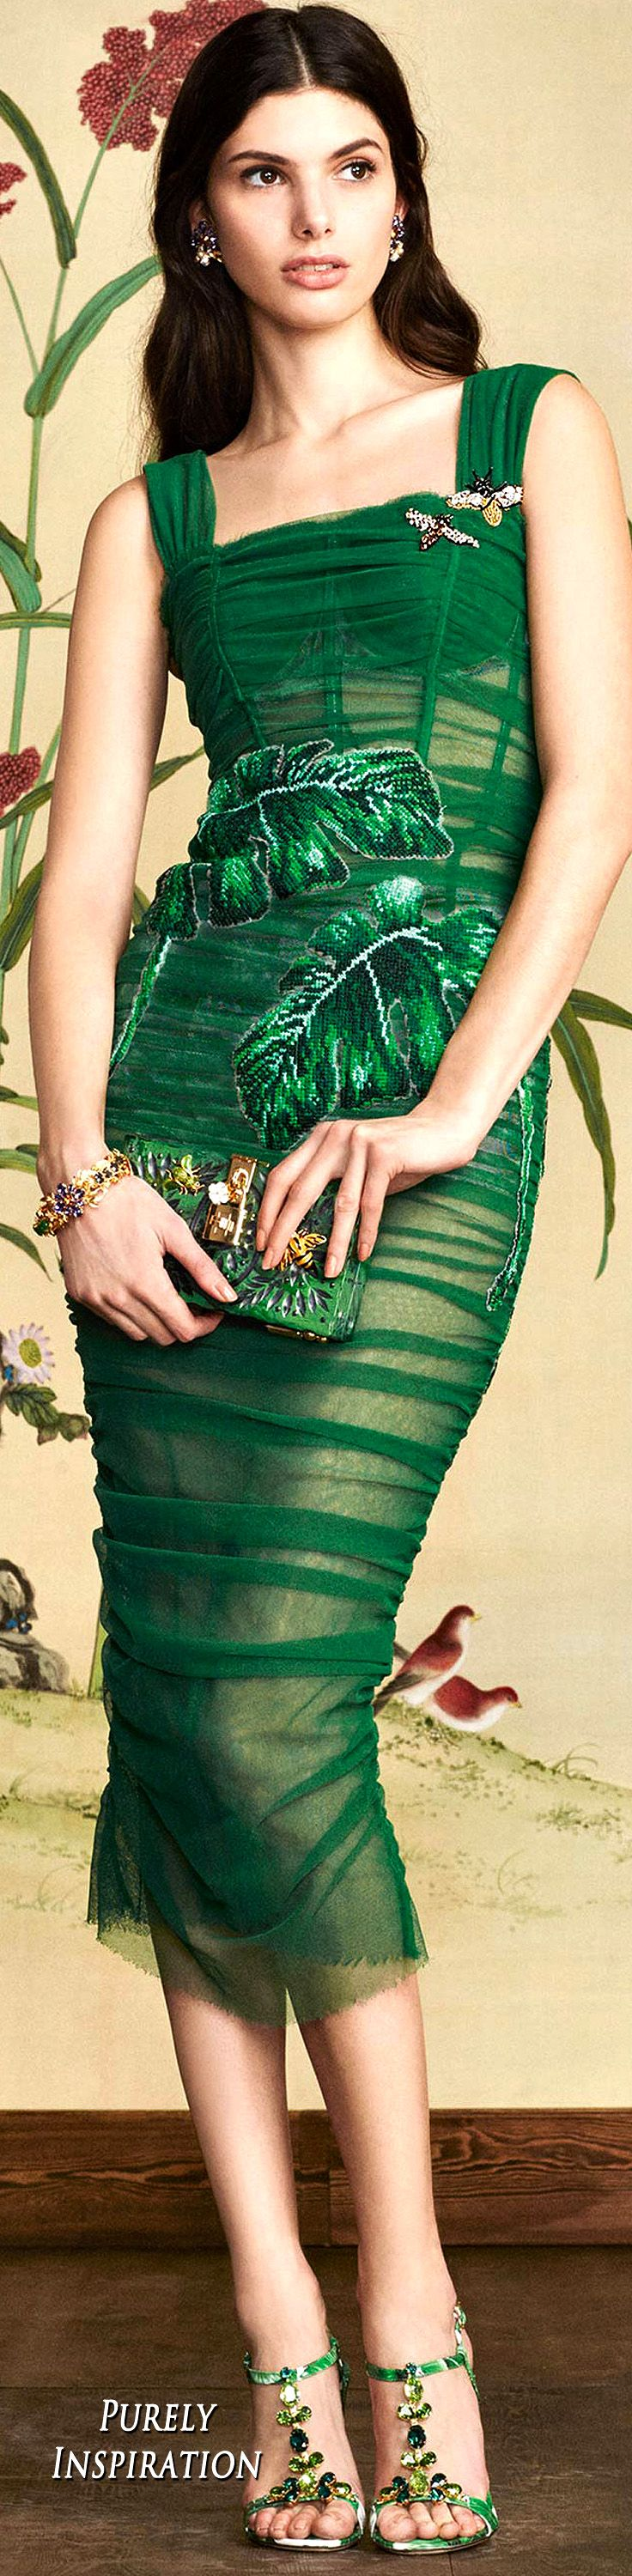 Dolce & Gabbana Botanical Garden Collection FW2016 Women's Fashion RTW | Purely Inspiration